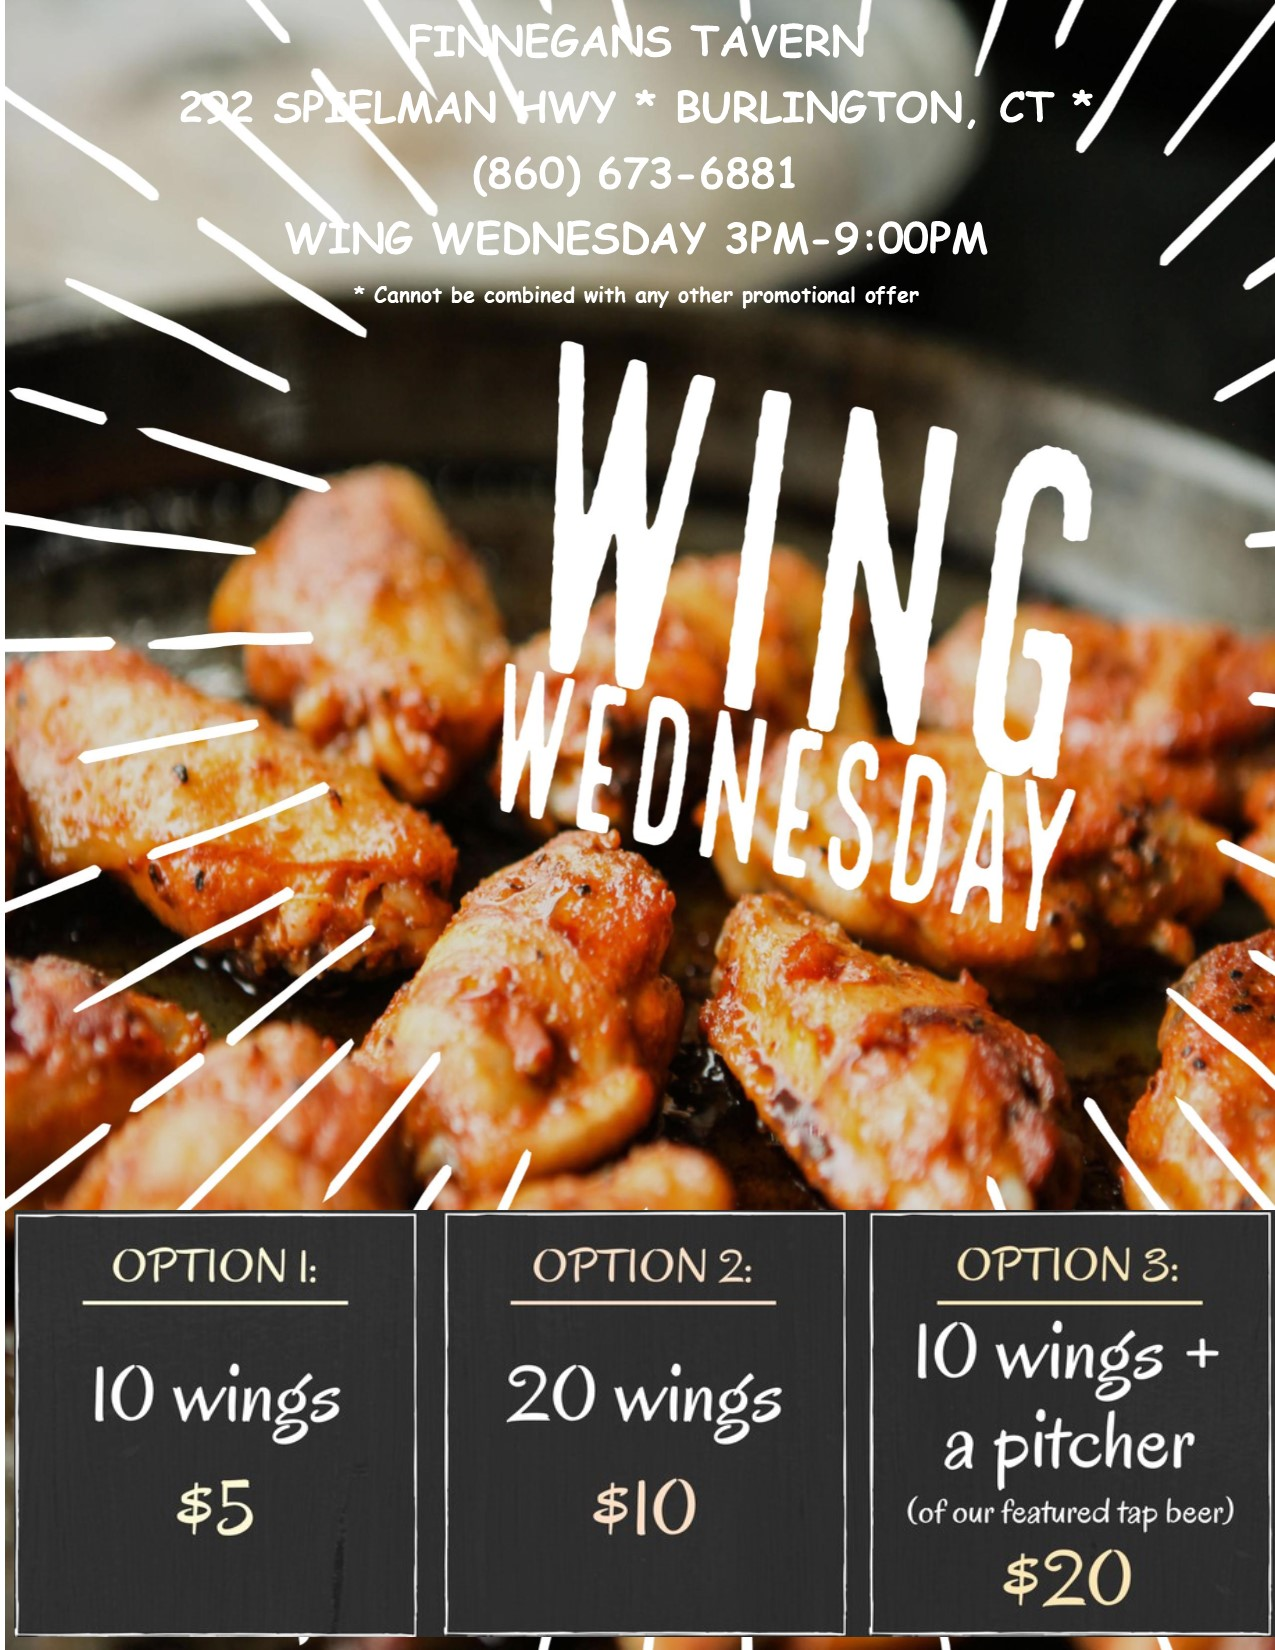 Finnegans tavern 292 Spielman Hwy - Burlington, CT. 860-673-6881. Wing Wednesday 3pm - 9 pm *Cannot be combined with any other promotional offer - Option 1: 10 Wings $5 Option 2: 20 wings $10. Option 3: 10 wings + a pitcher (of our featured tap beer) $20